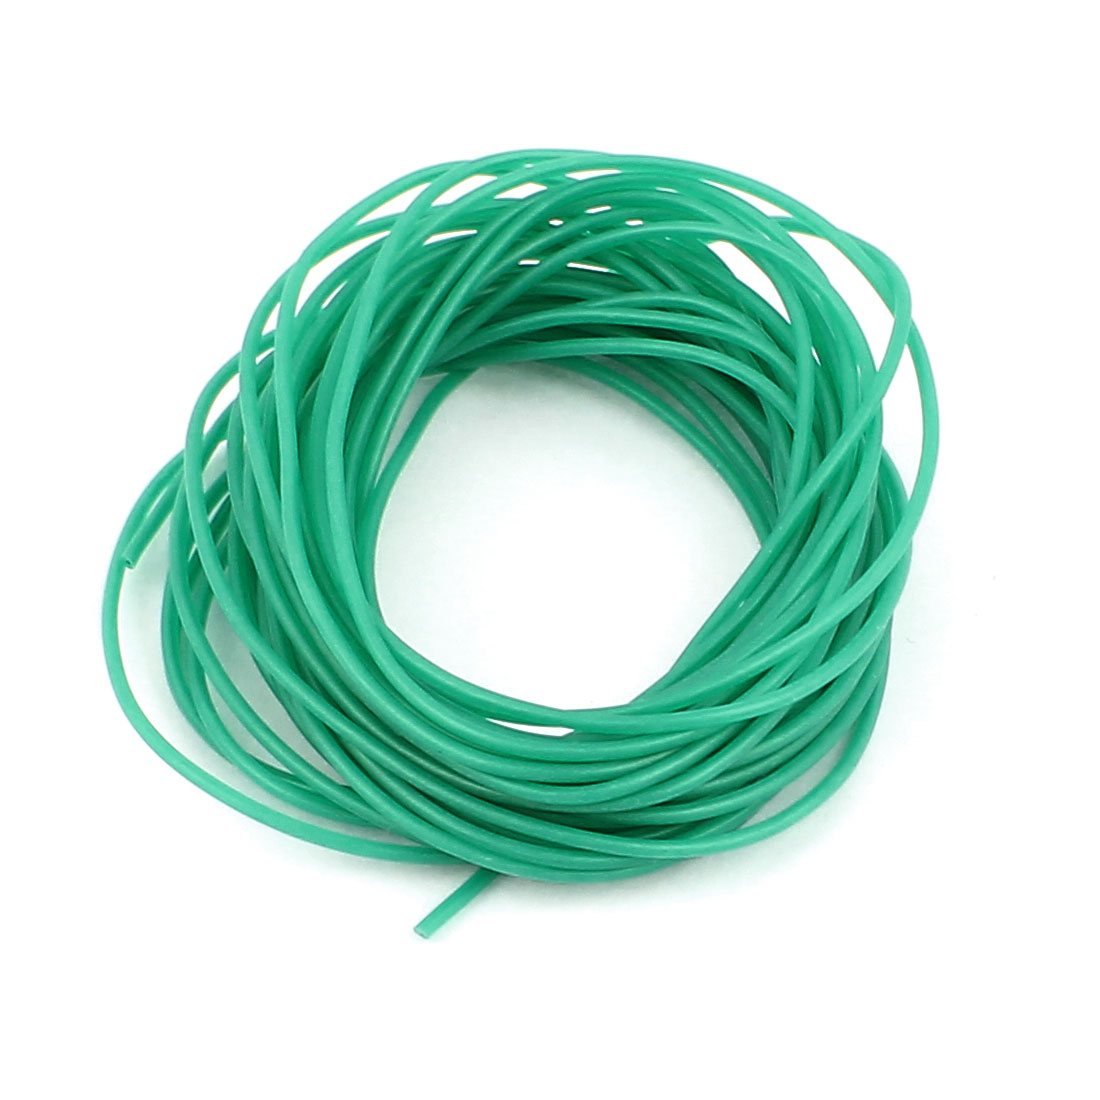 5M 28AWG Electric Copper Core Flexible Silicone Wire Cable Green